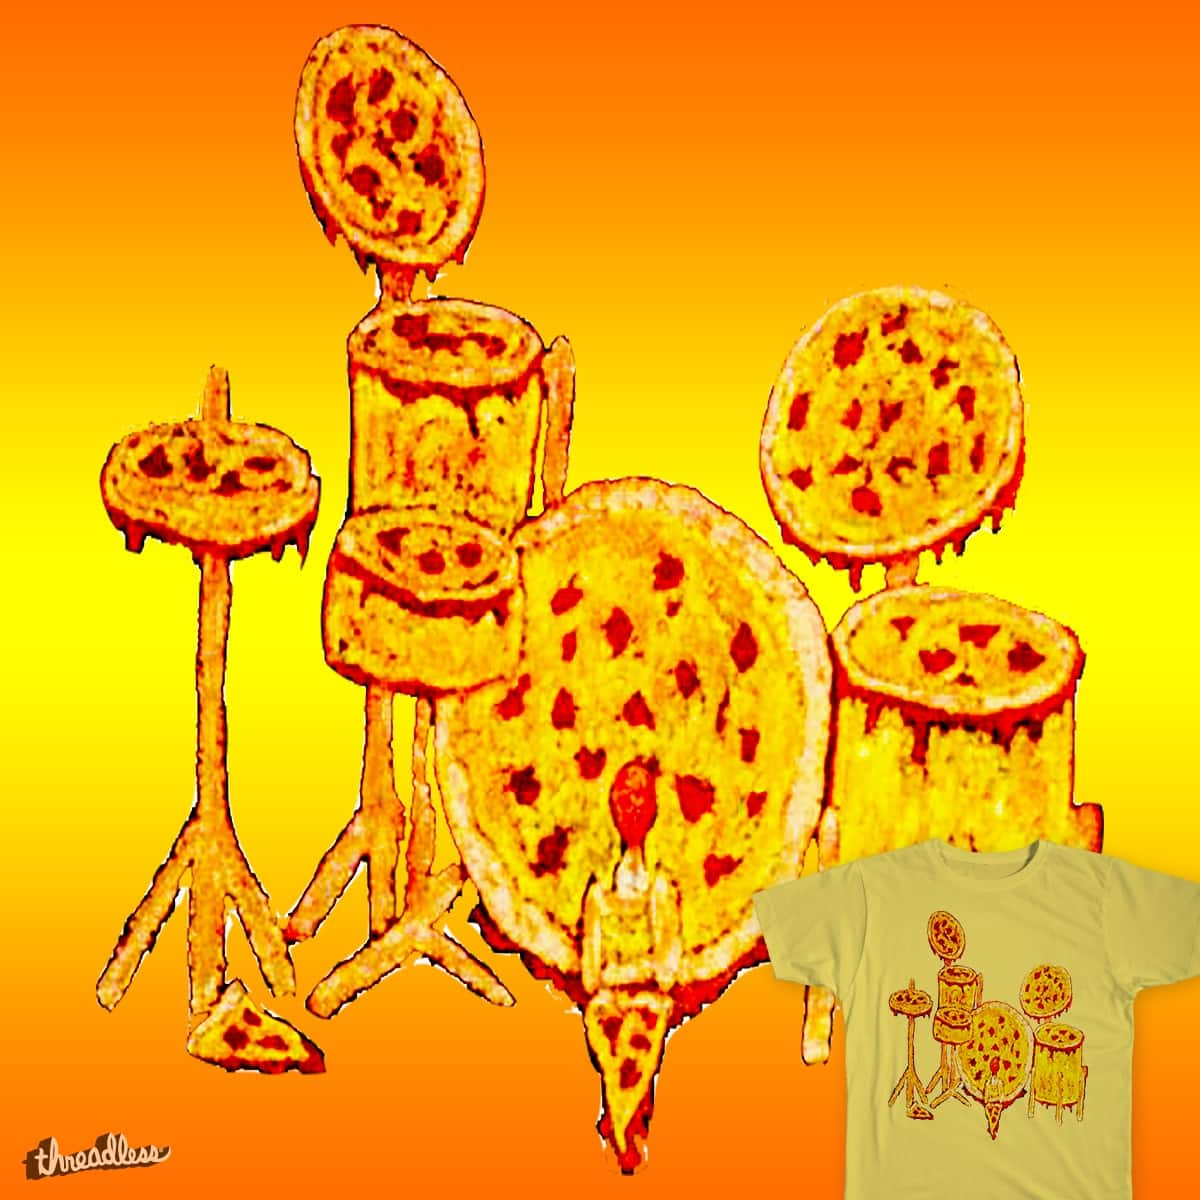 Score Pizza Drum Set by captainshook on Threadless